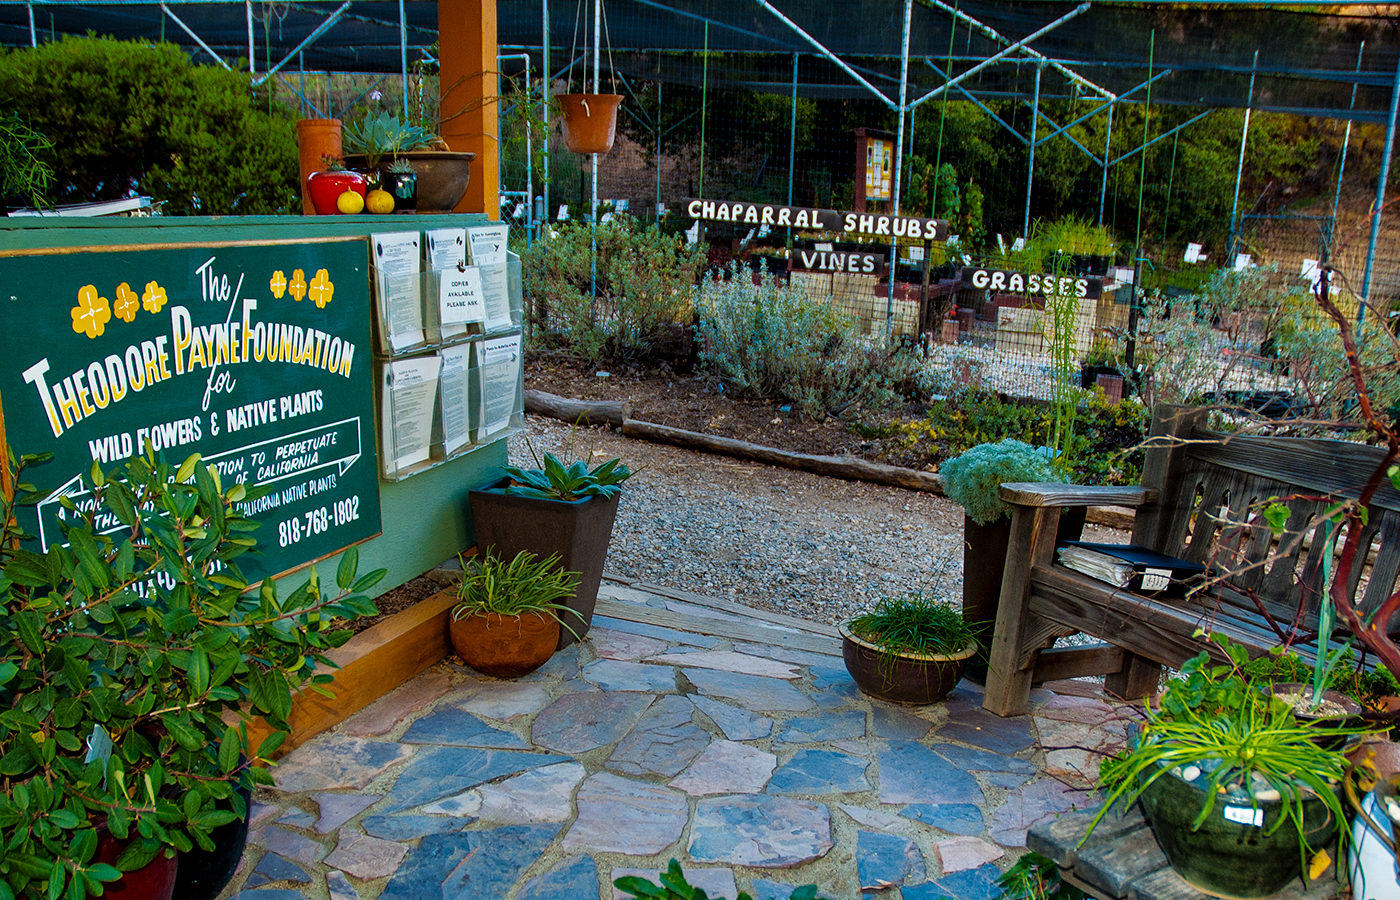 The Theodore Payne Foundation's native plant nursery.